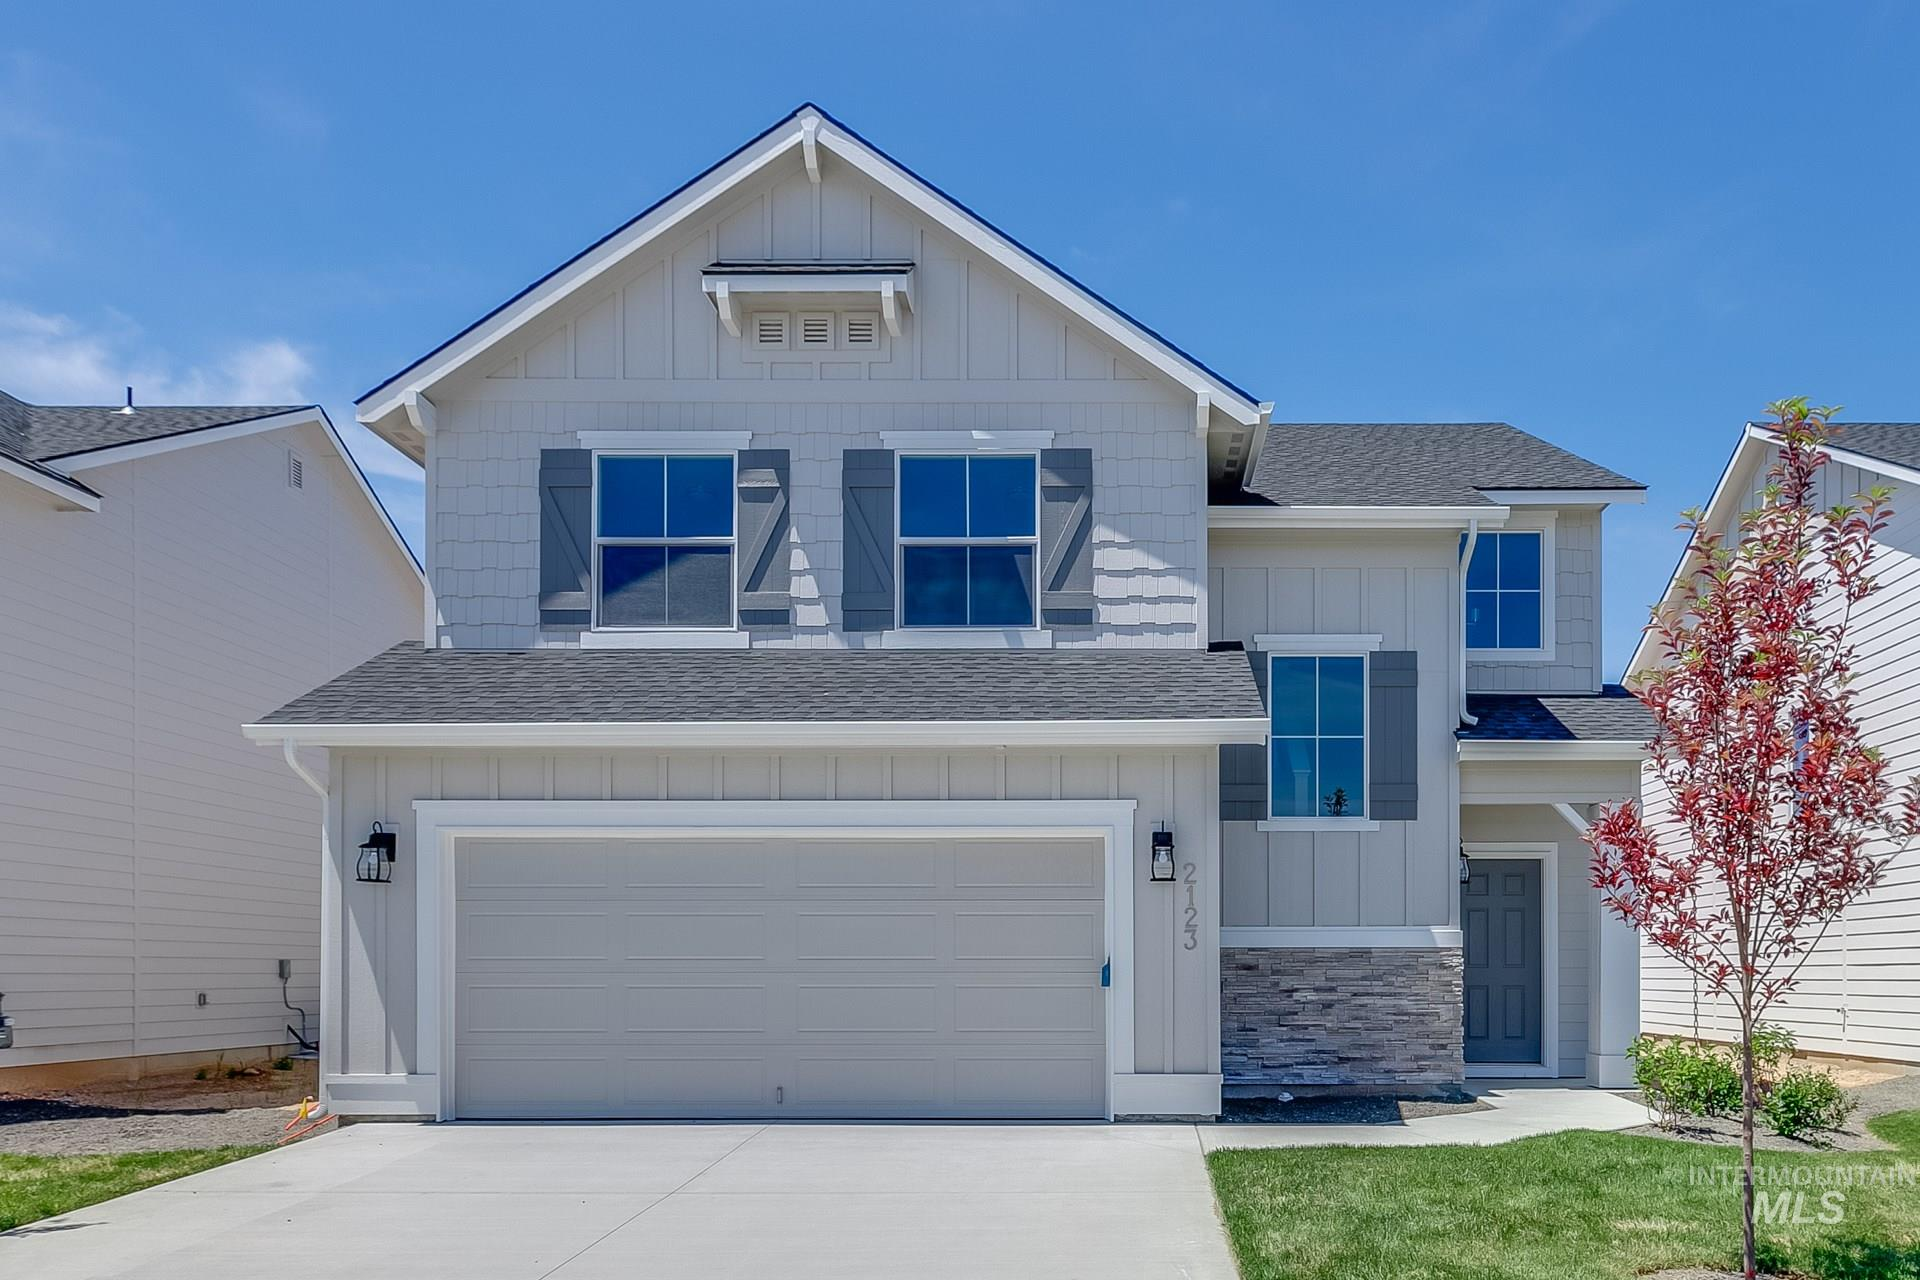 Want to tour this home NOW? Get on-demand access with TOUR NOW. Simply visit the home, follow the directions to access, and tour instantly. Get $15k with our Buy Now, Get More Promo NOW thru 7/31. The Newport 2017 is a fantastic floor plan featuring 3 bed w/ an open bonus space. The large kitchen, great room & dining area are perfect for entertaining with a beautiful island & large pantry. Price includes granite kitchen counter tops, upgraded cabinets, stainless appliances, & more. RCE-923.